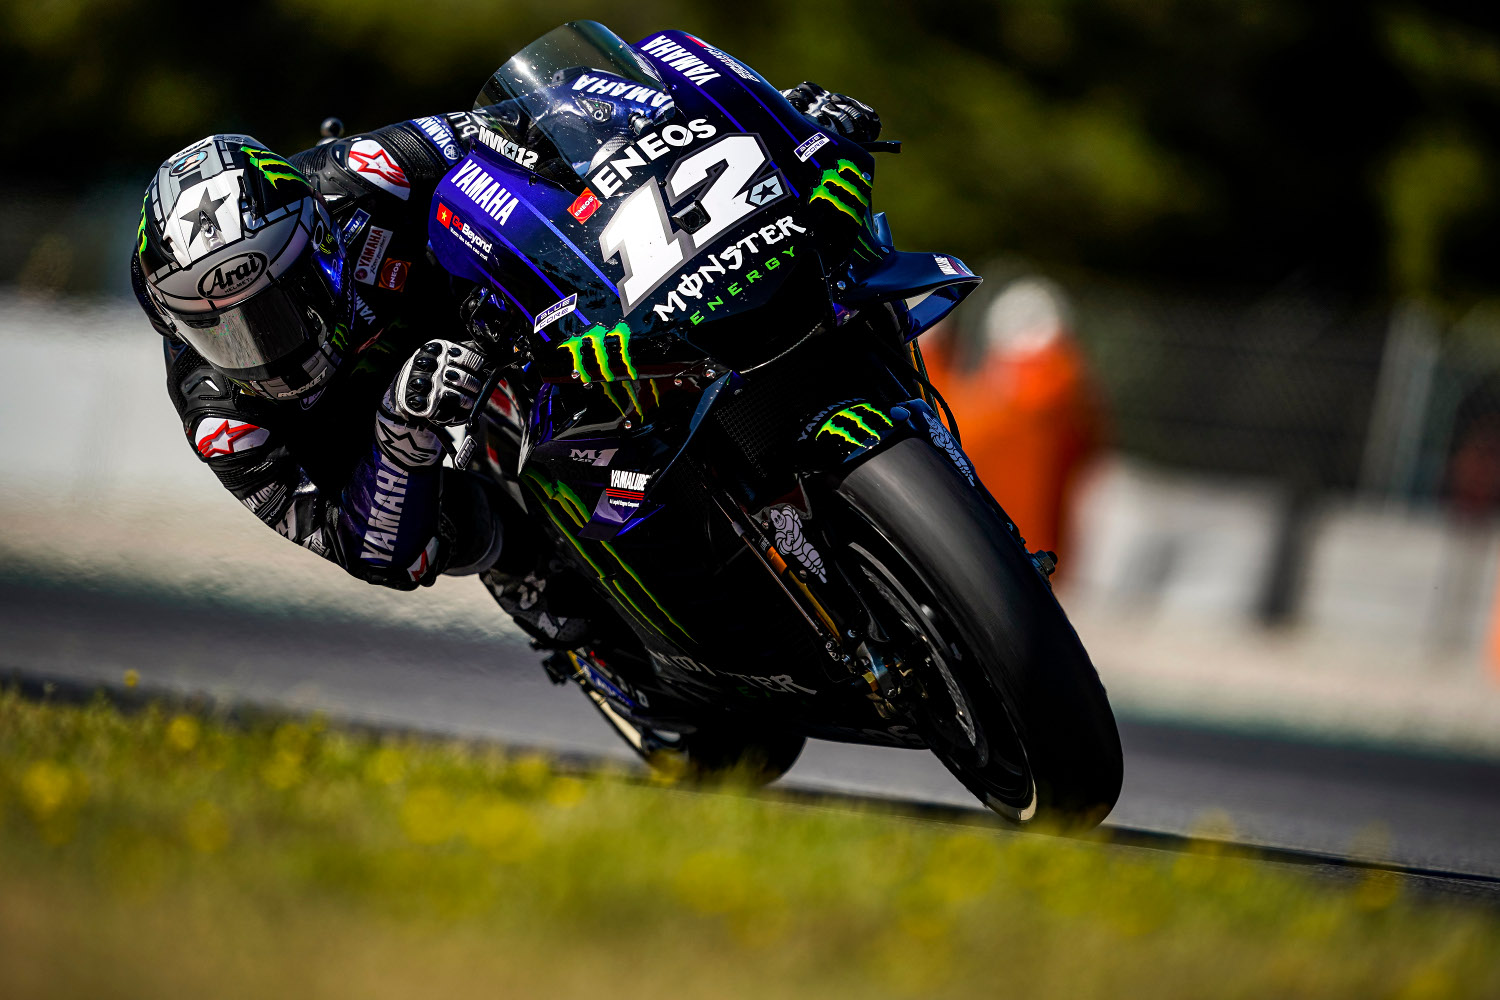 Maverick Vinales - Monster Energy Yamaha MotoGP